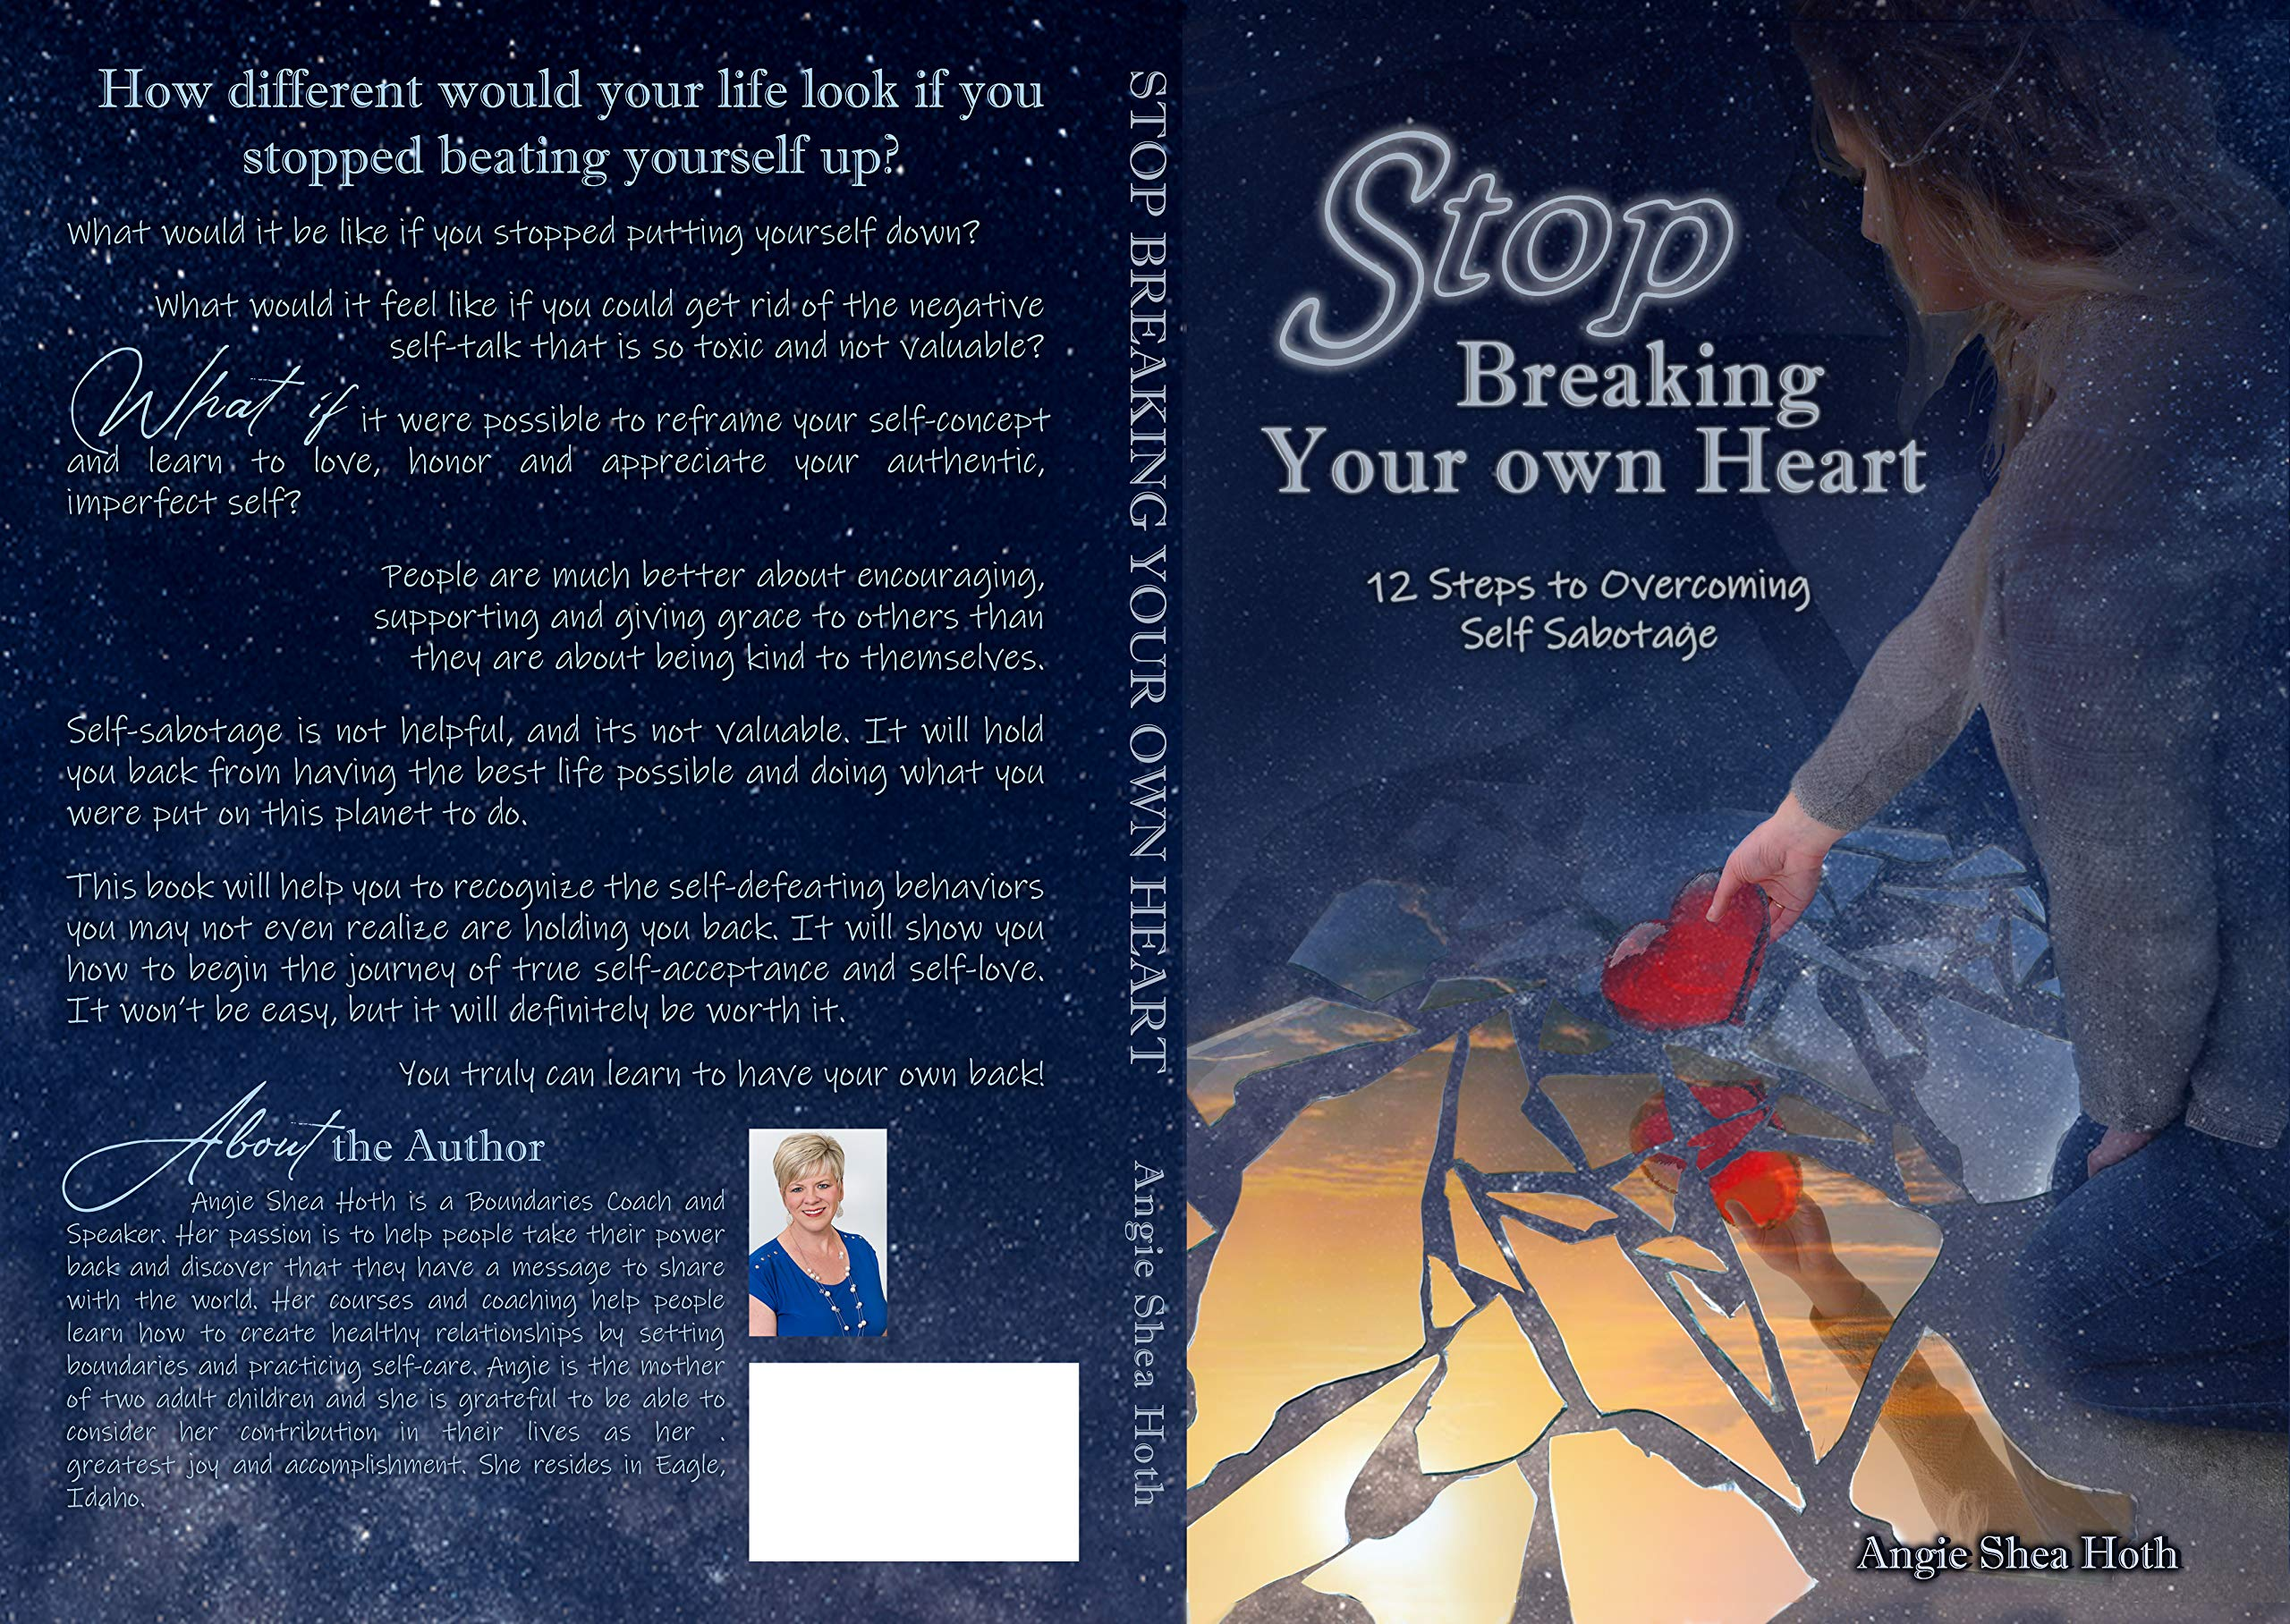 Stop Breaking Your Own Heart: 12 Steps To Overcoming Self Sabotage